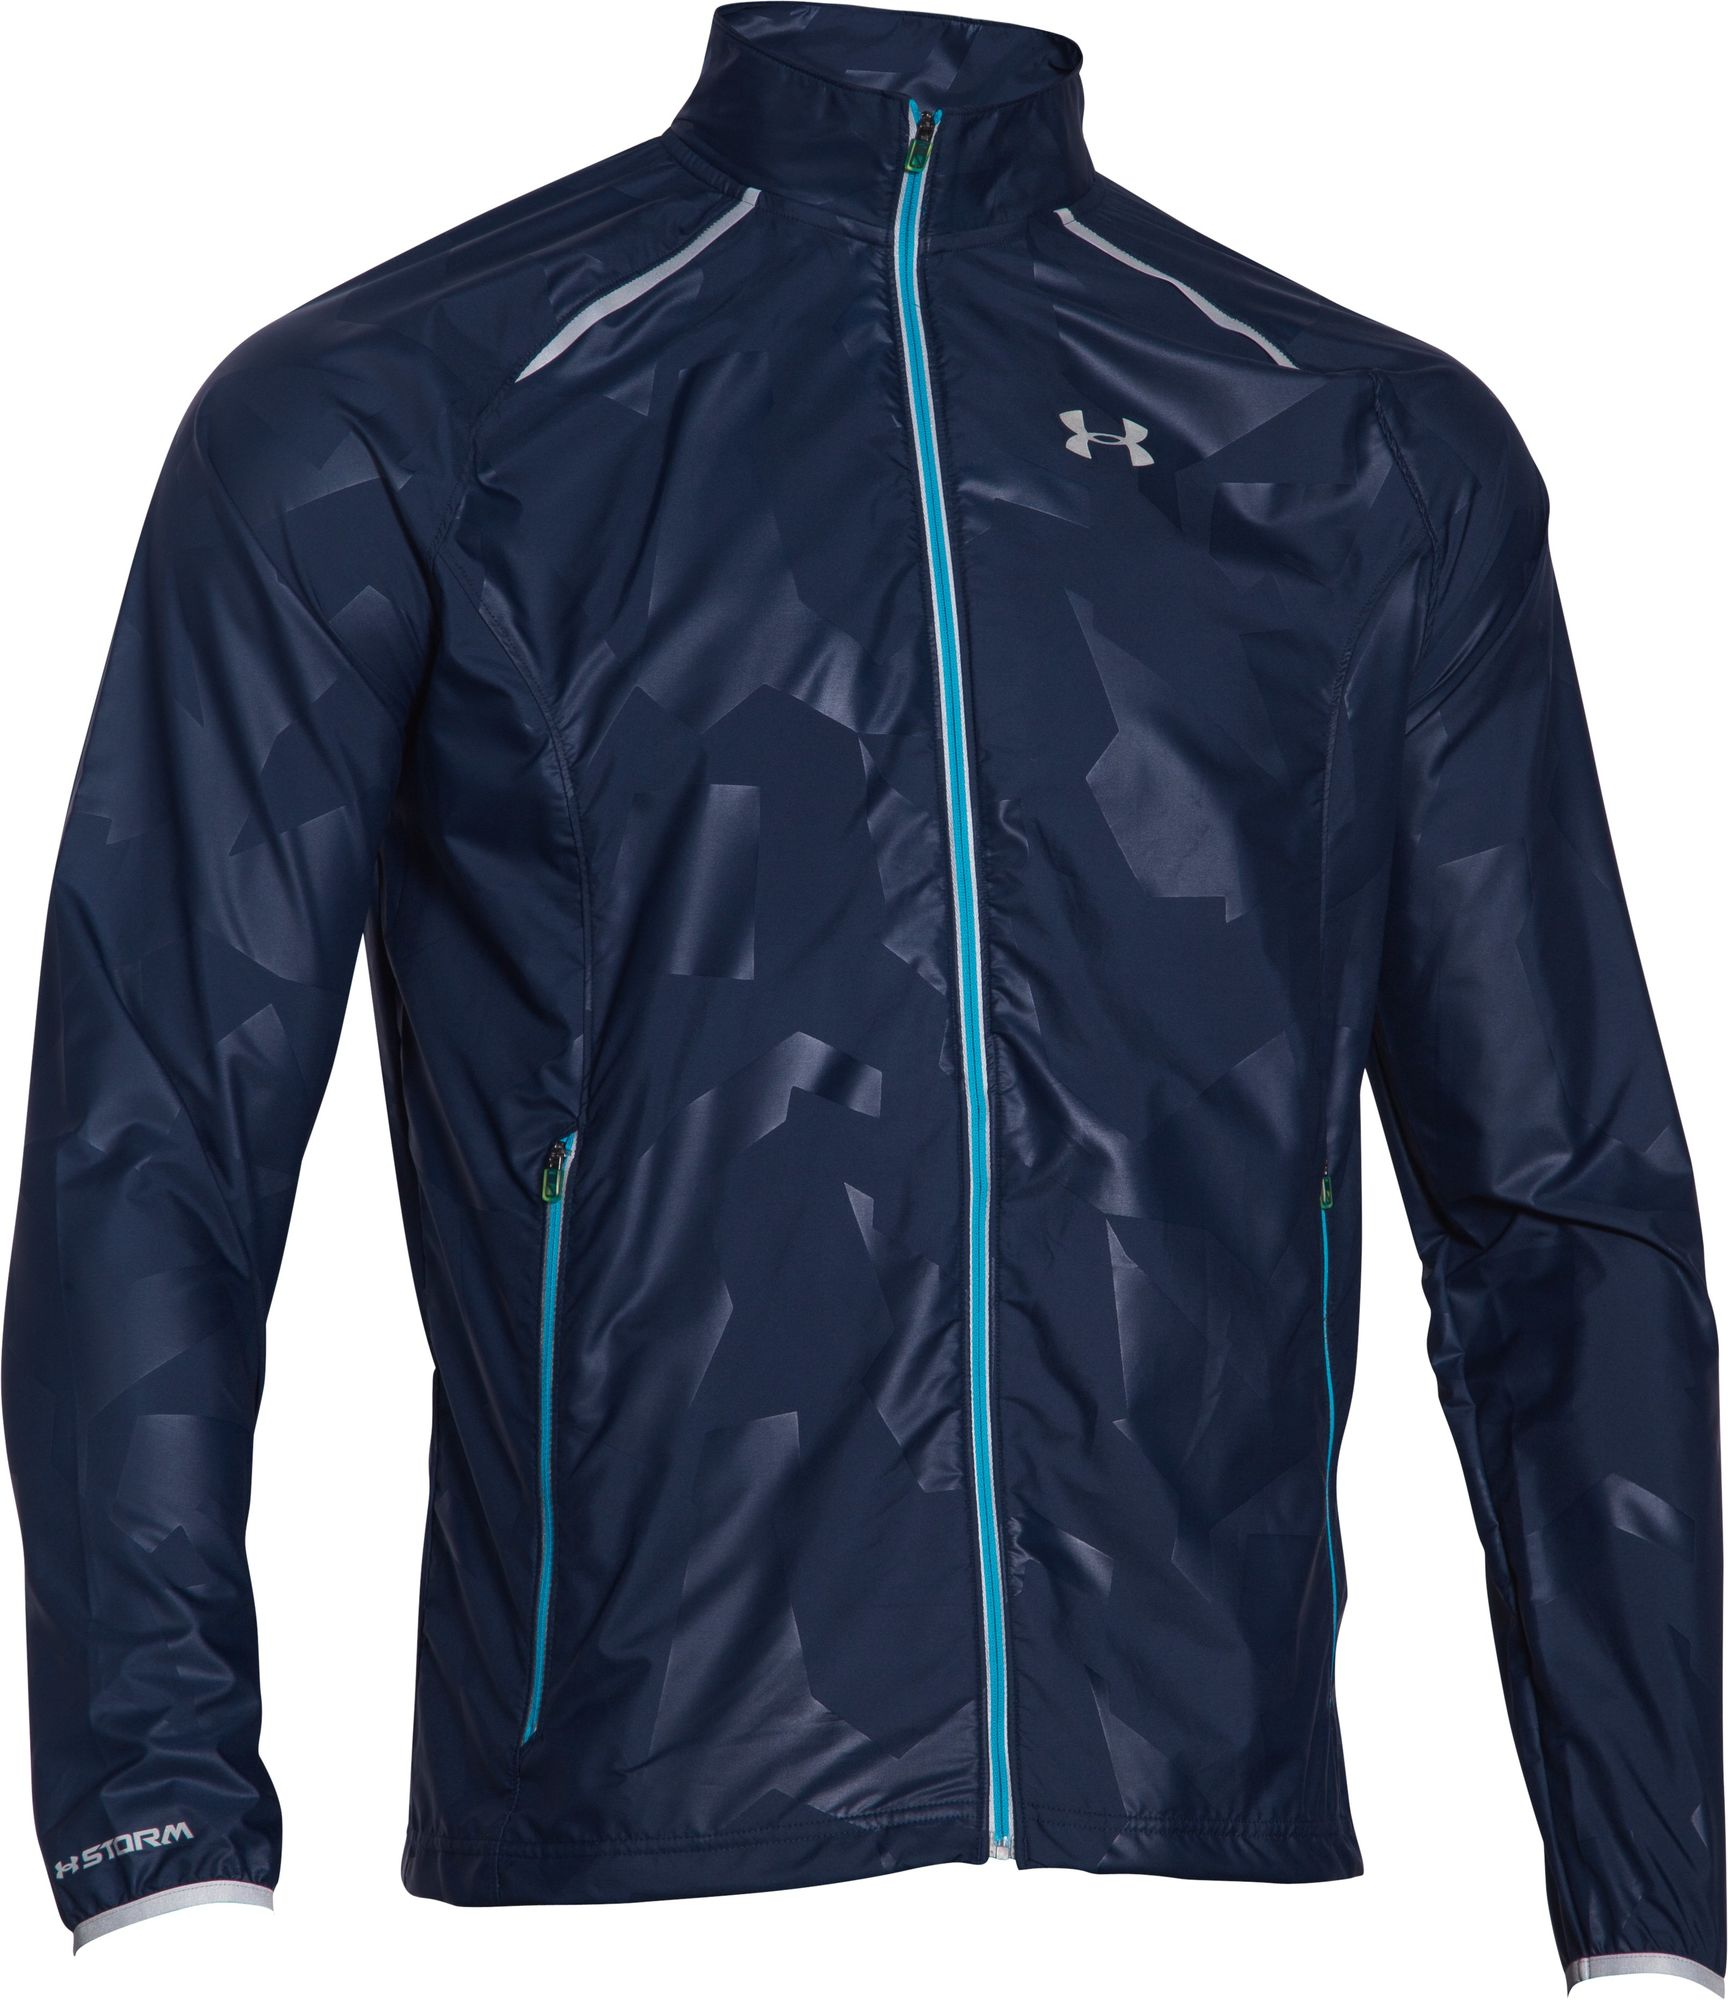 Under Armour Storm Launch Run Jacket in Dunkelblau